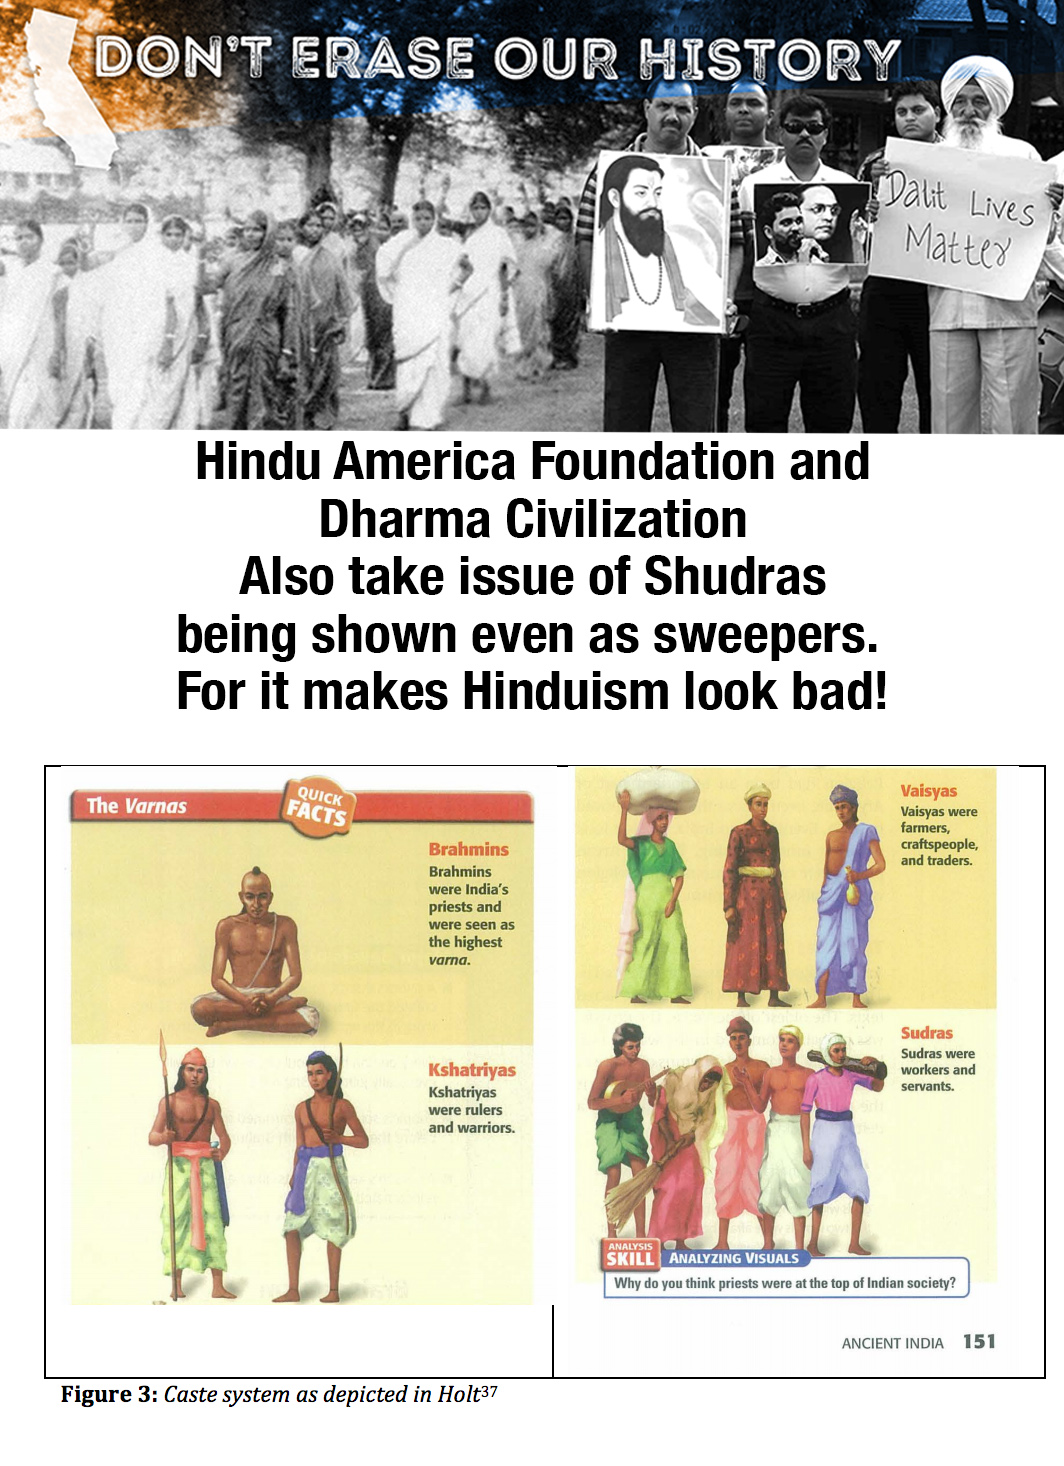 A poster protesting the Hindu American Foundation's claims, also showing an image from an American history textbook explaining the caste system.